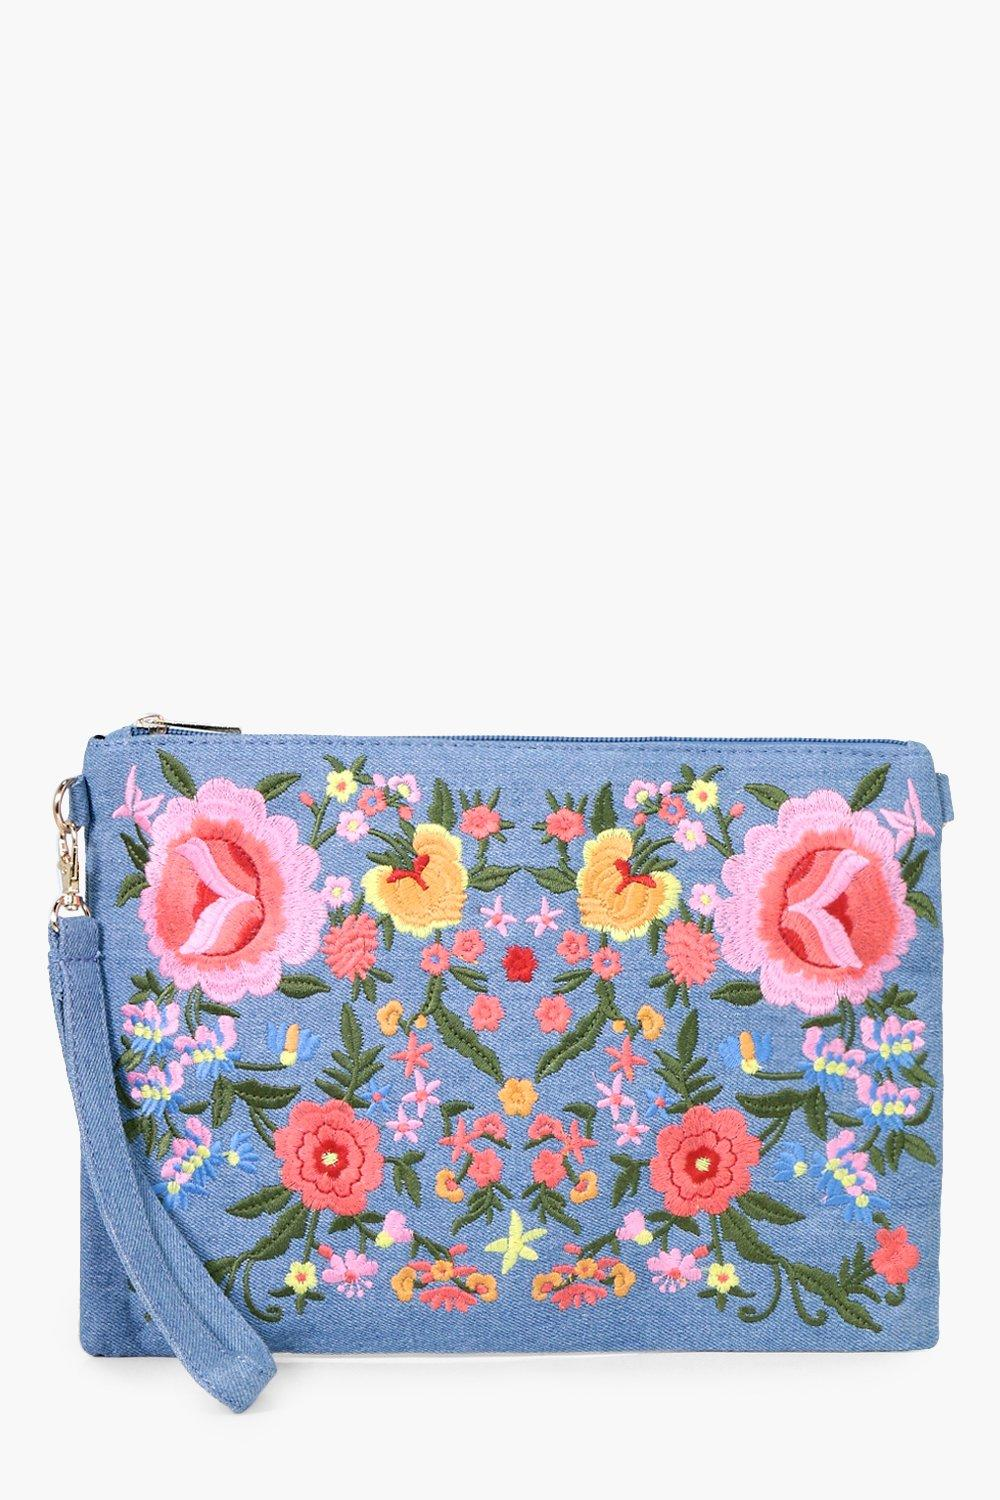 All Over Embroidered Denim Clutch - blue - Lisa Al